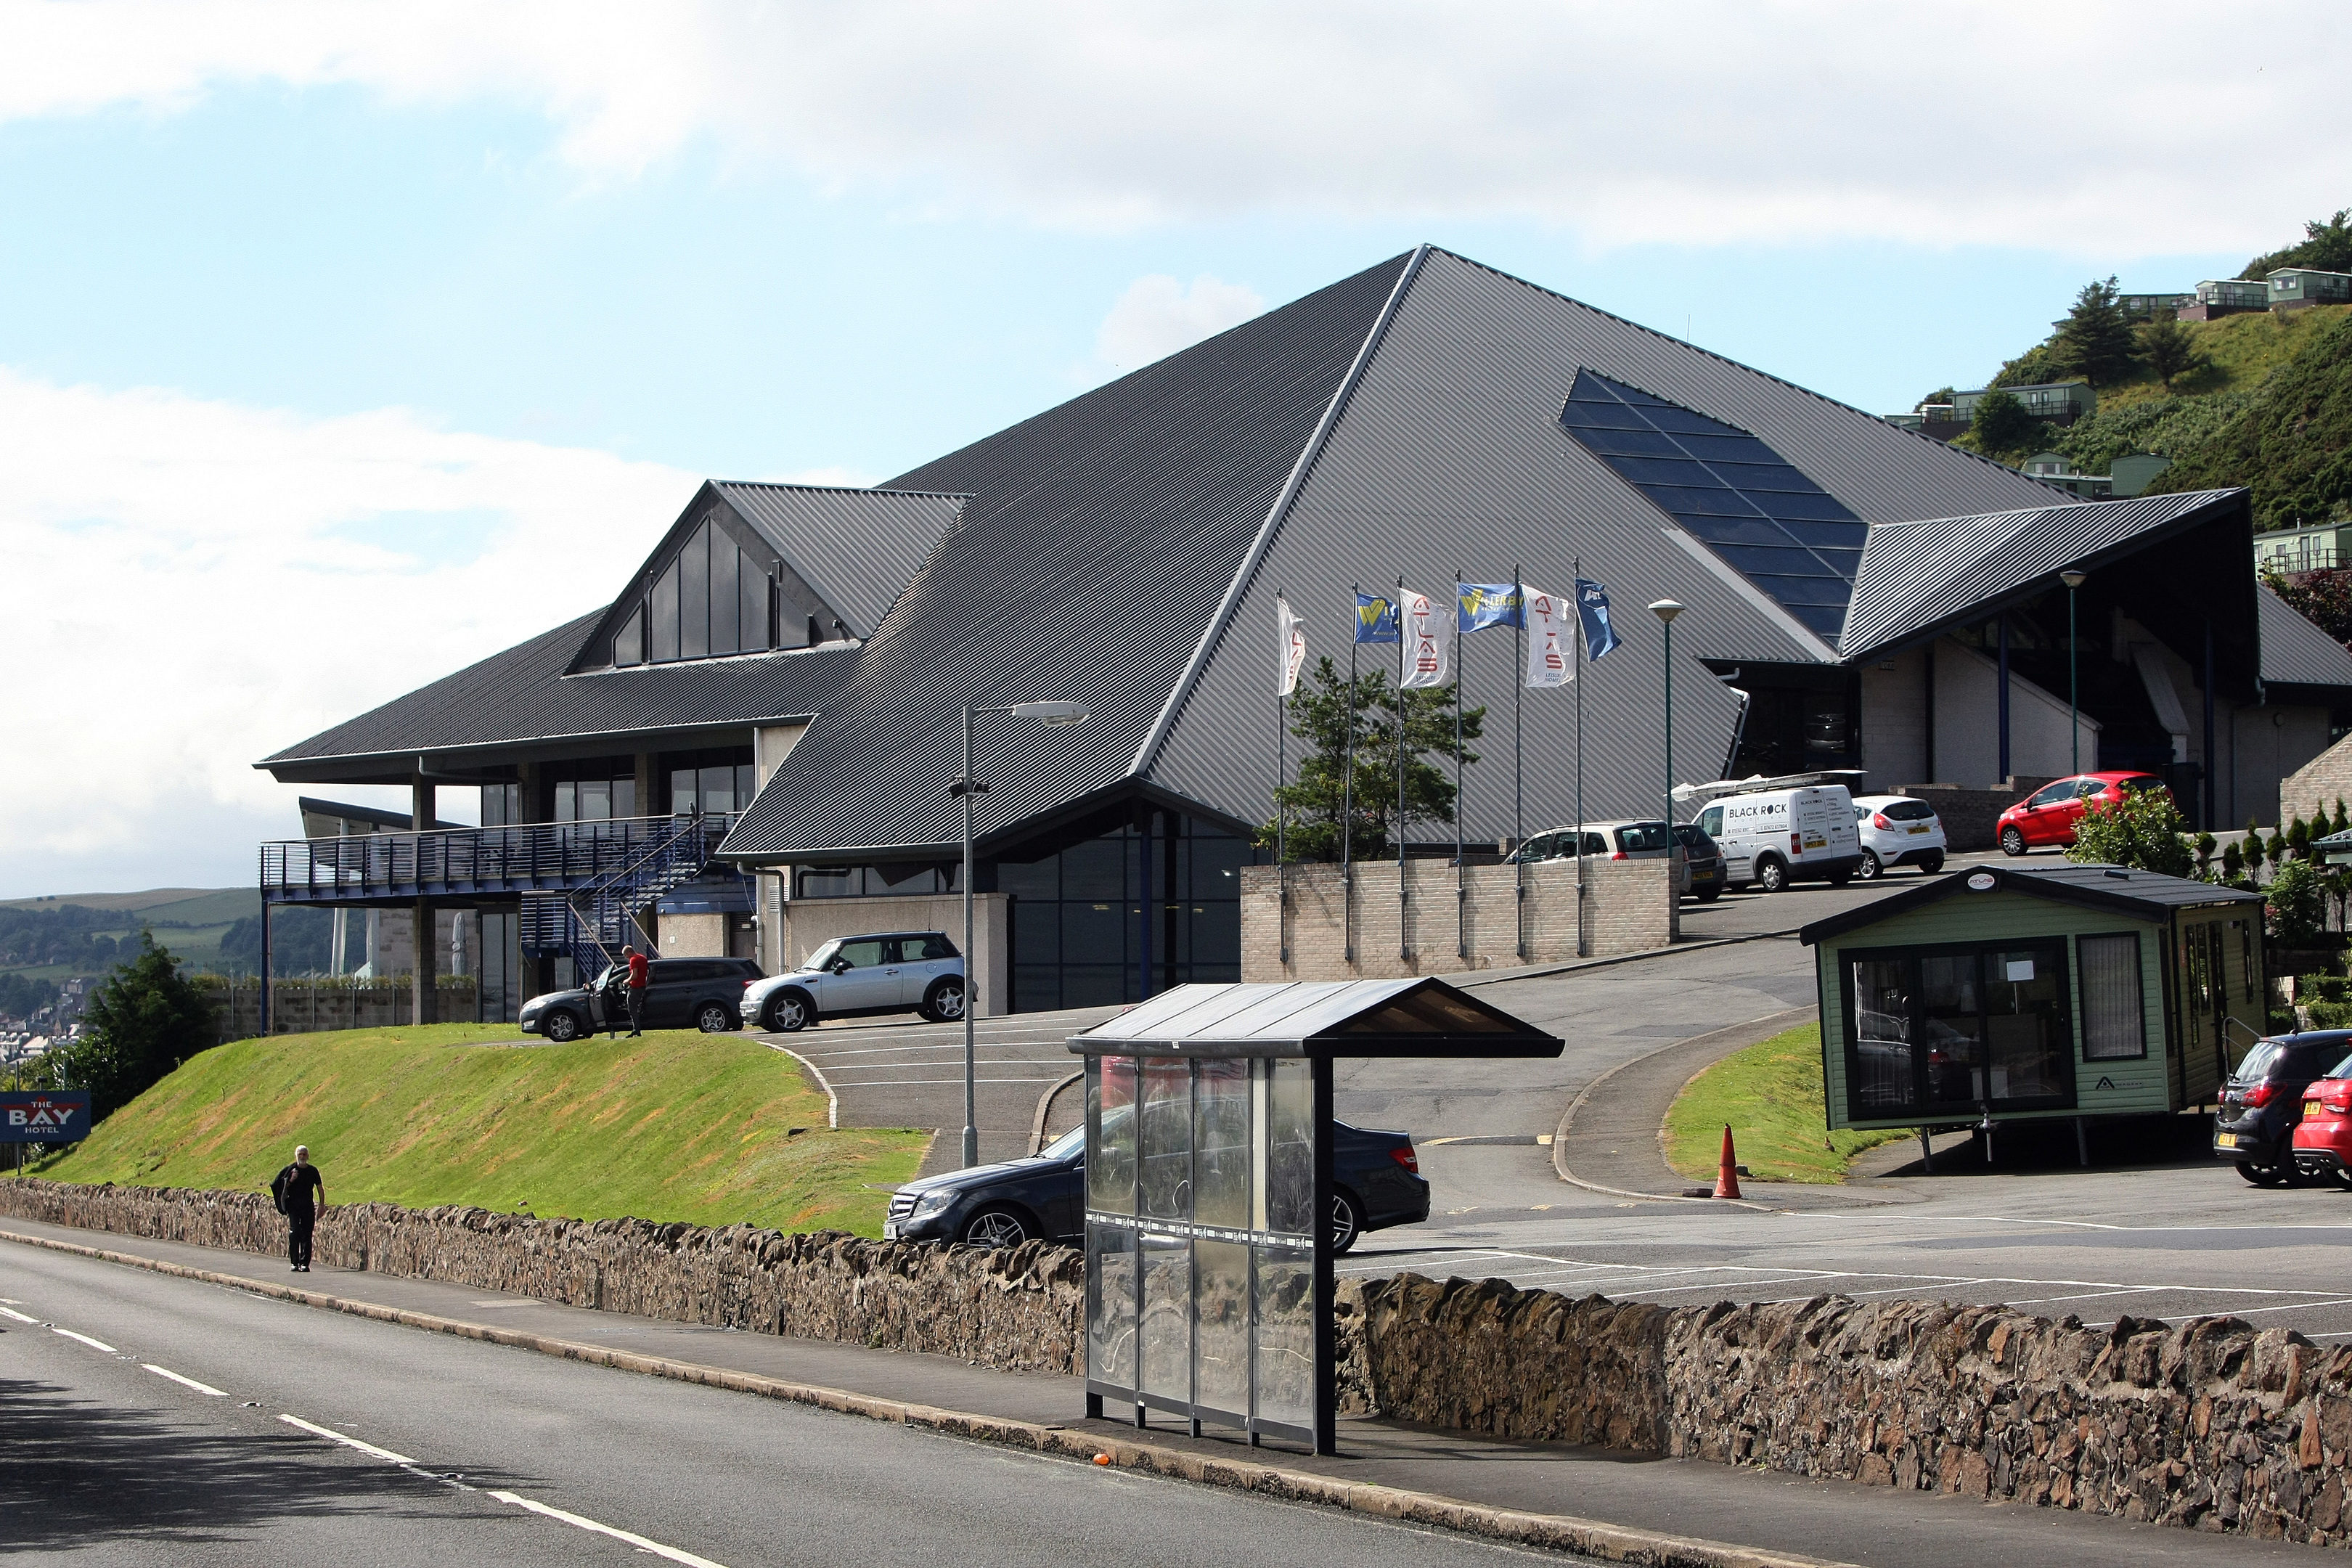 Pettycur Bay Holiday Park and Bay Hotel complex.